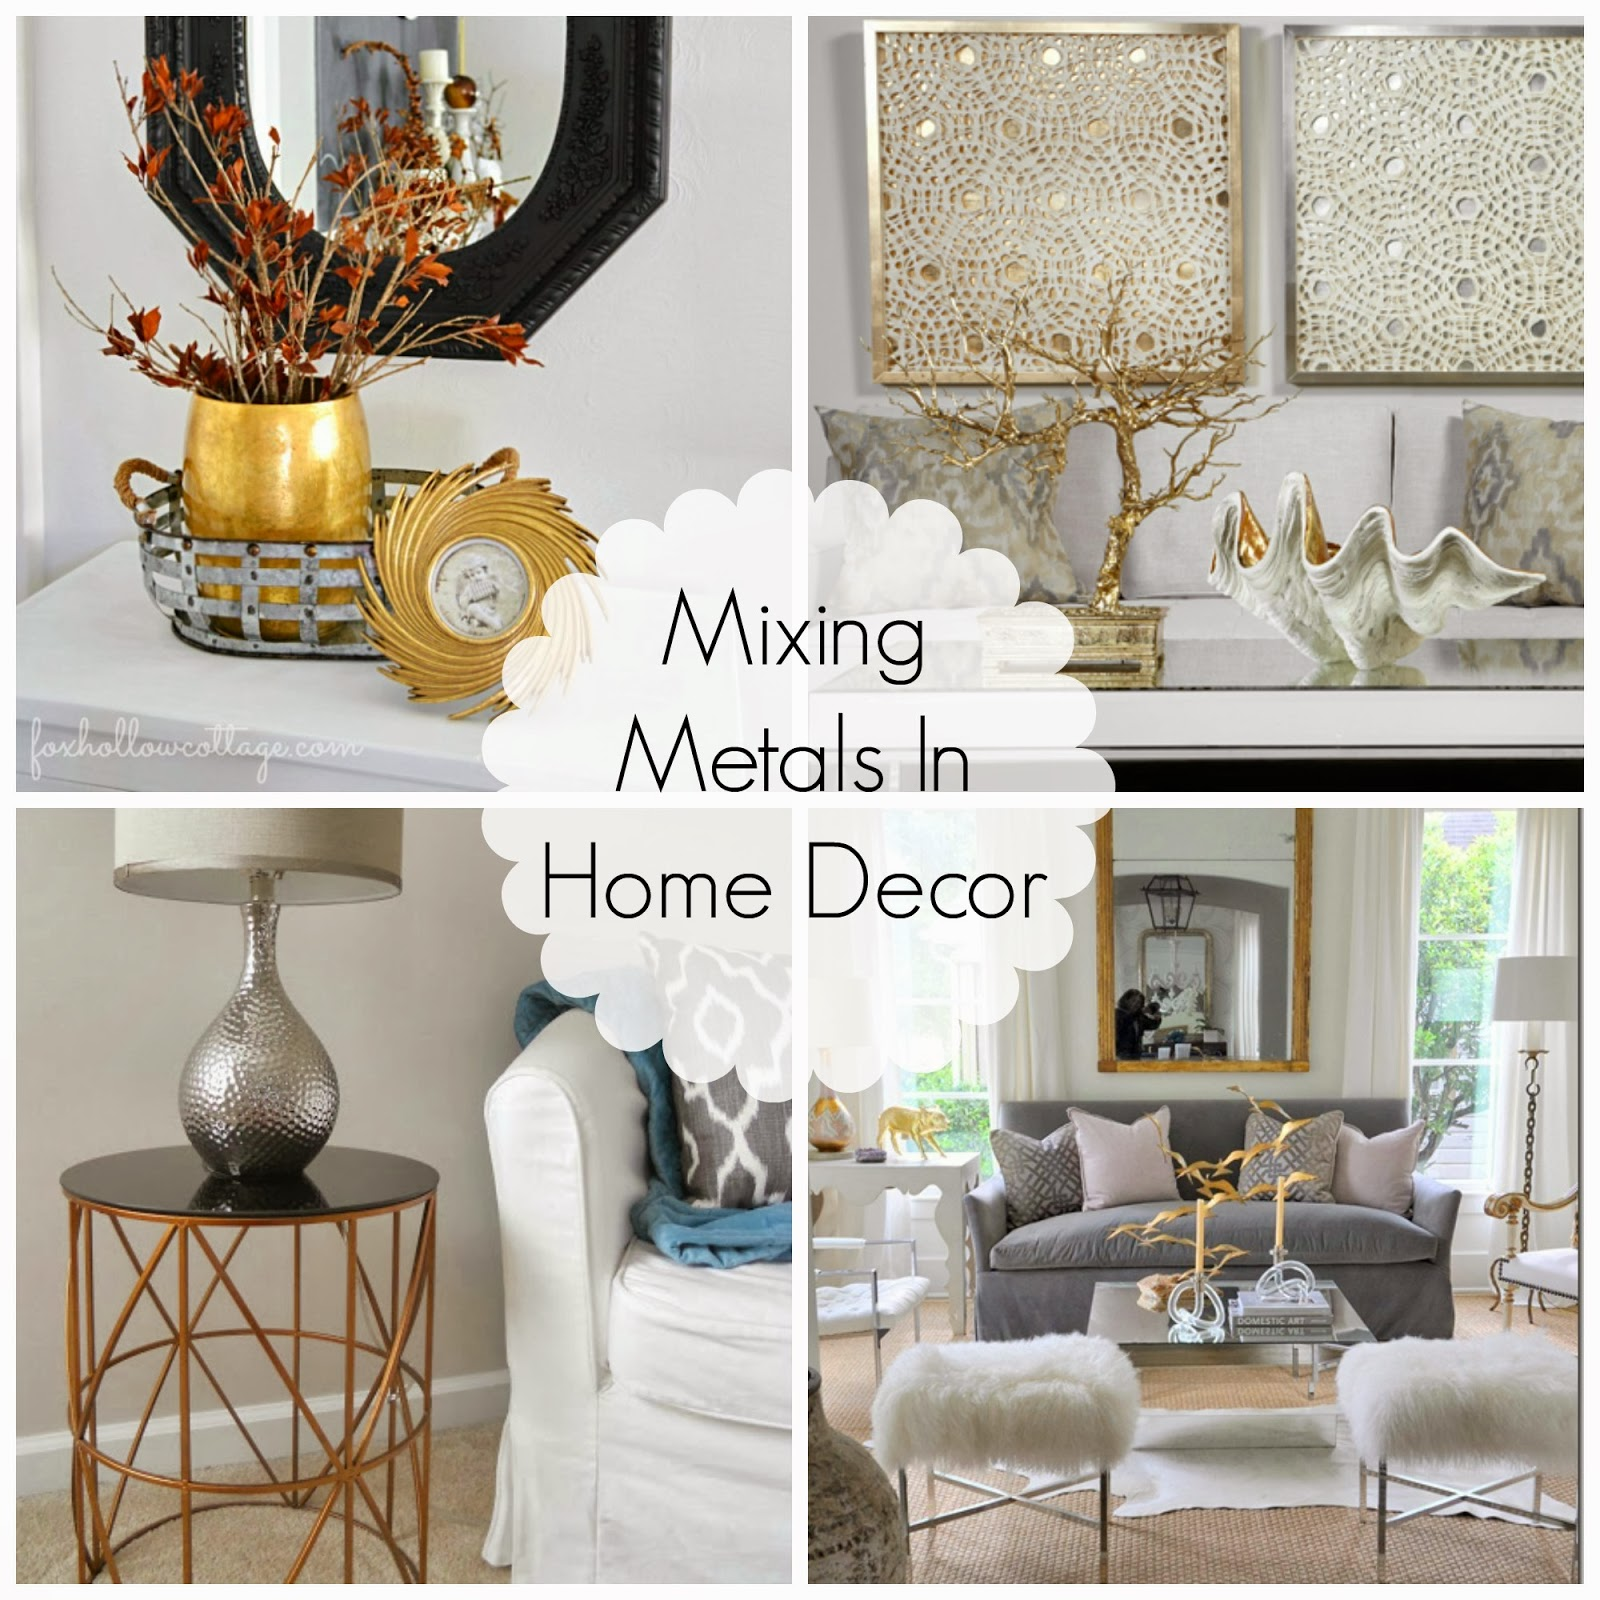 Decorating cents mixing metals in home decor Metal home decor